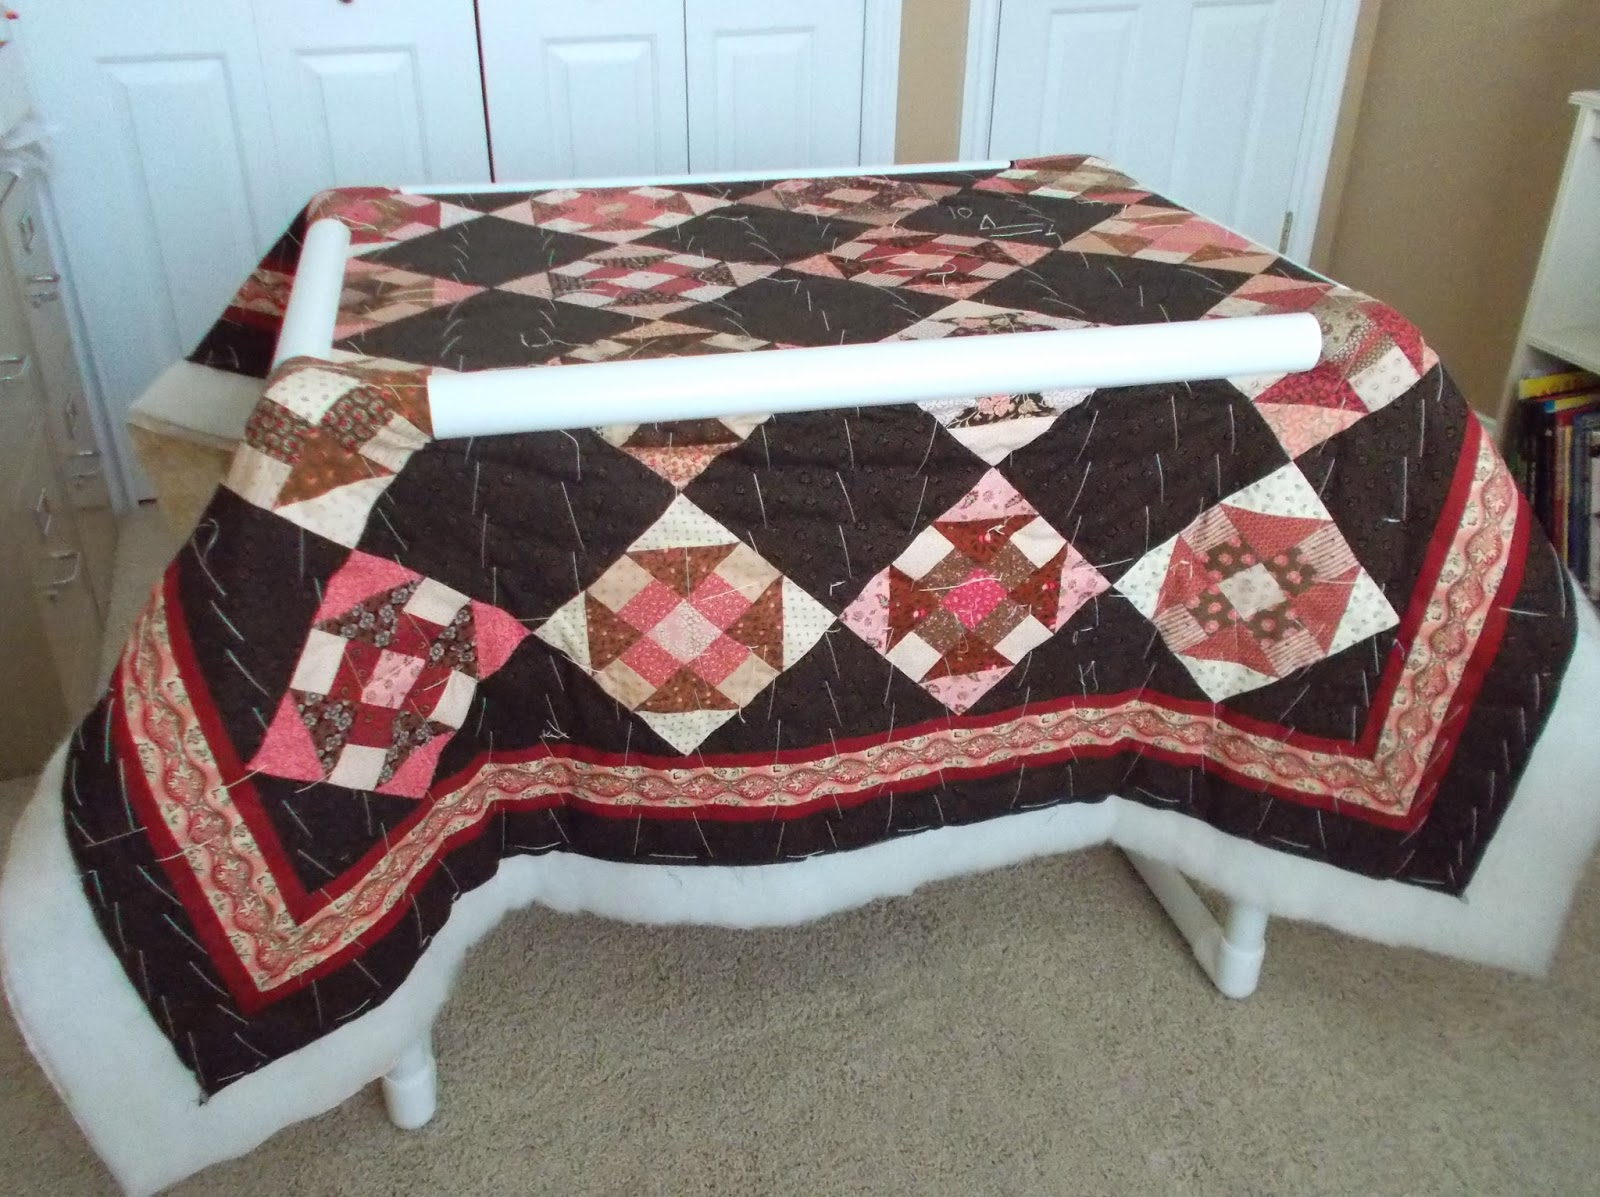 this size was created by demand for those who cover a lot of ... : quilt basting frame - Adamdwight.com